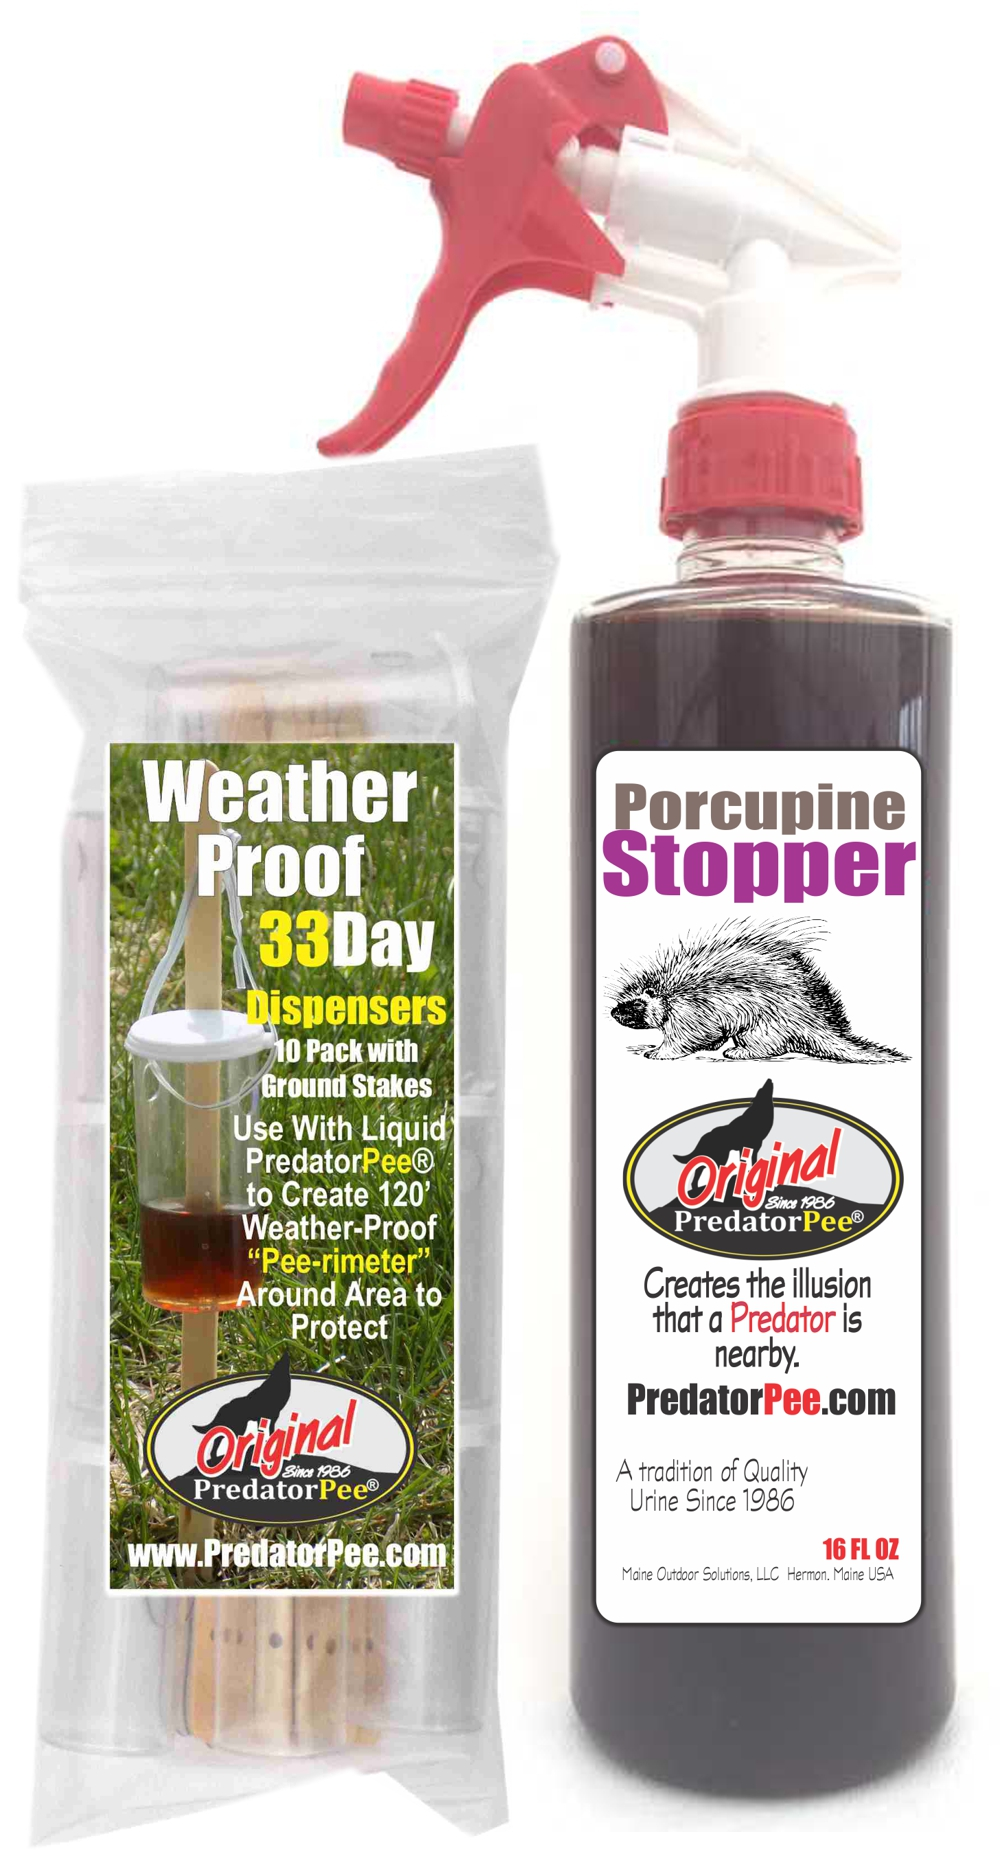 Porcupine 16oz-Dispenser Combo